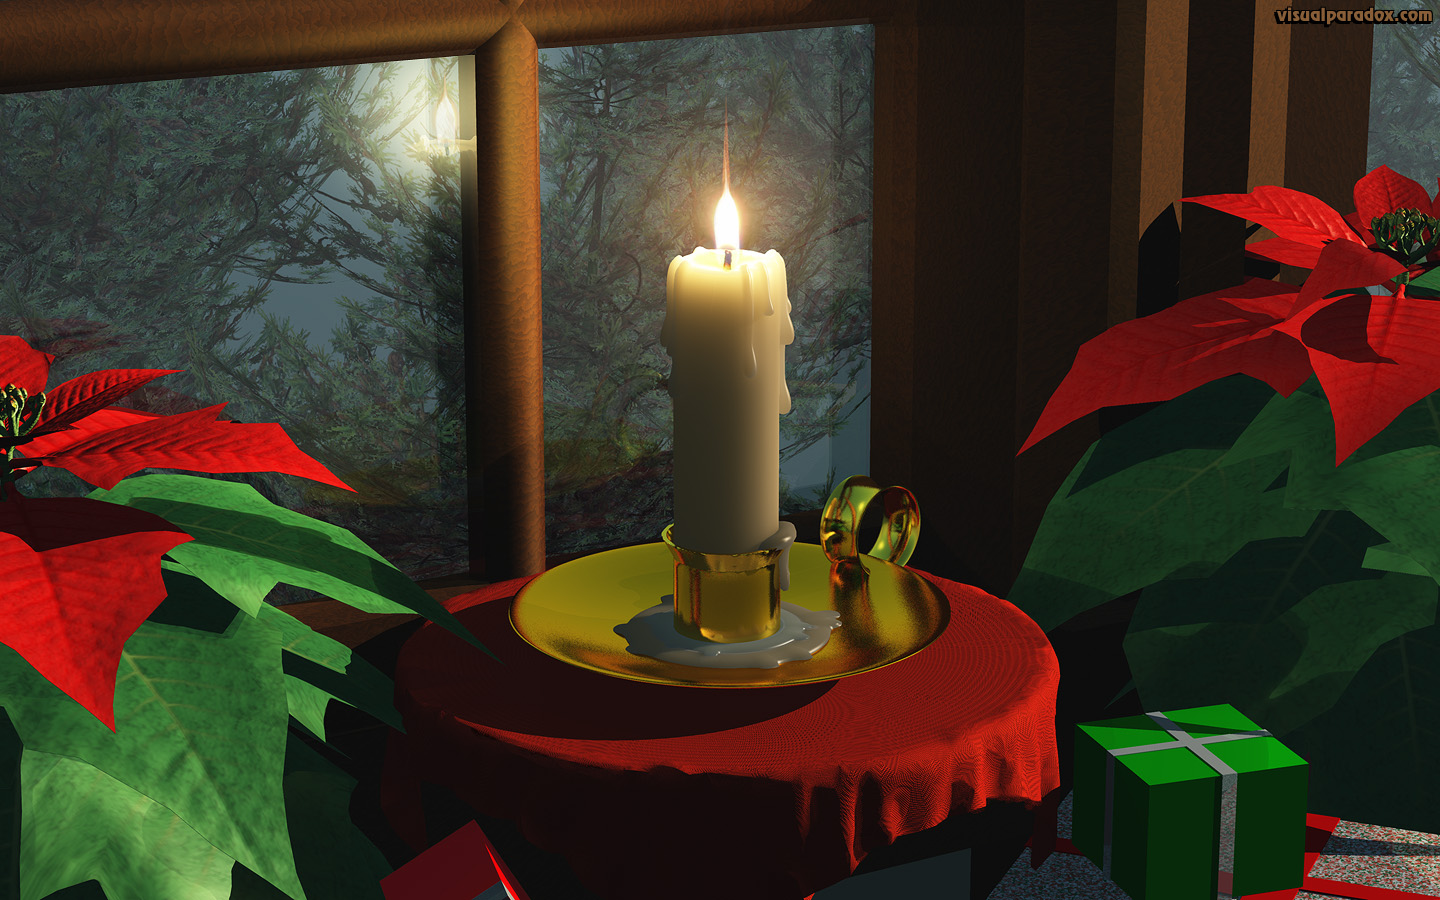 candle, window, fire, holiday, xmas, christmas, flame, poinsettia, candlestick, 3d, wallpaper, widescreen